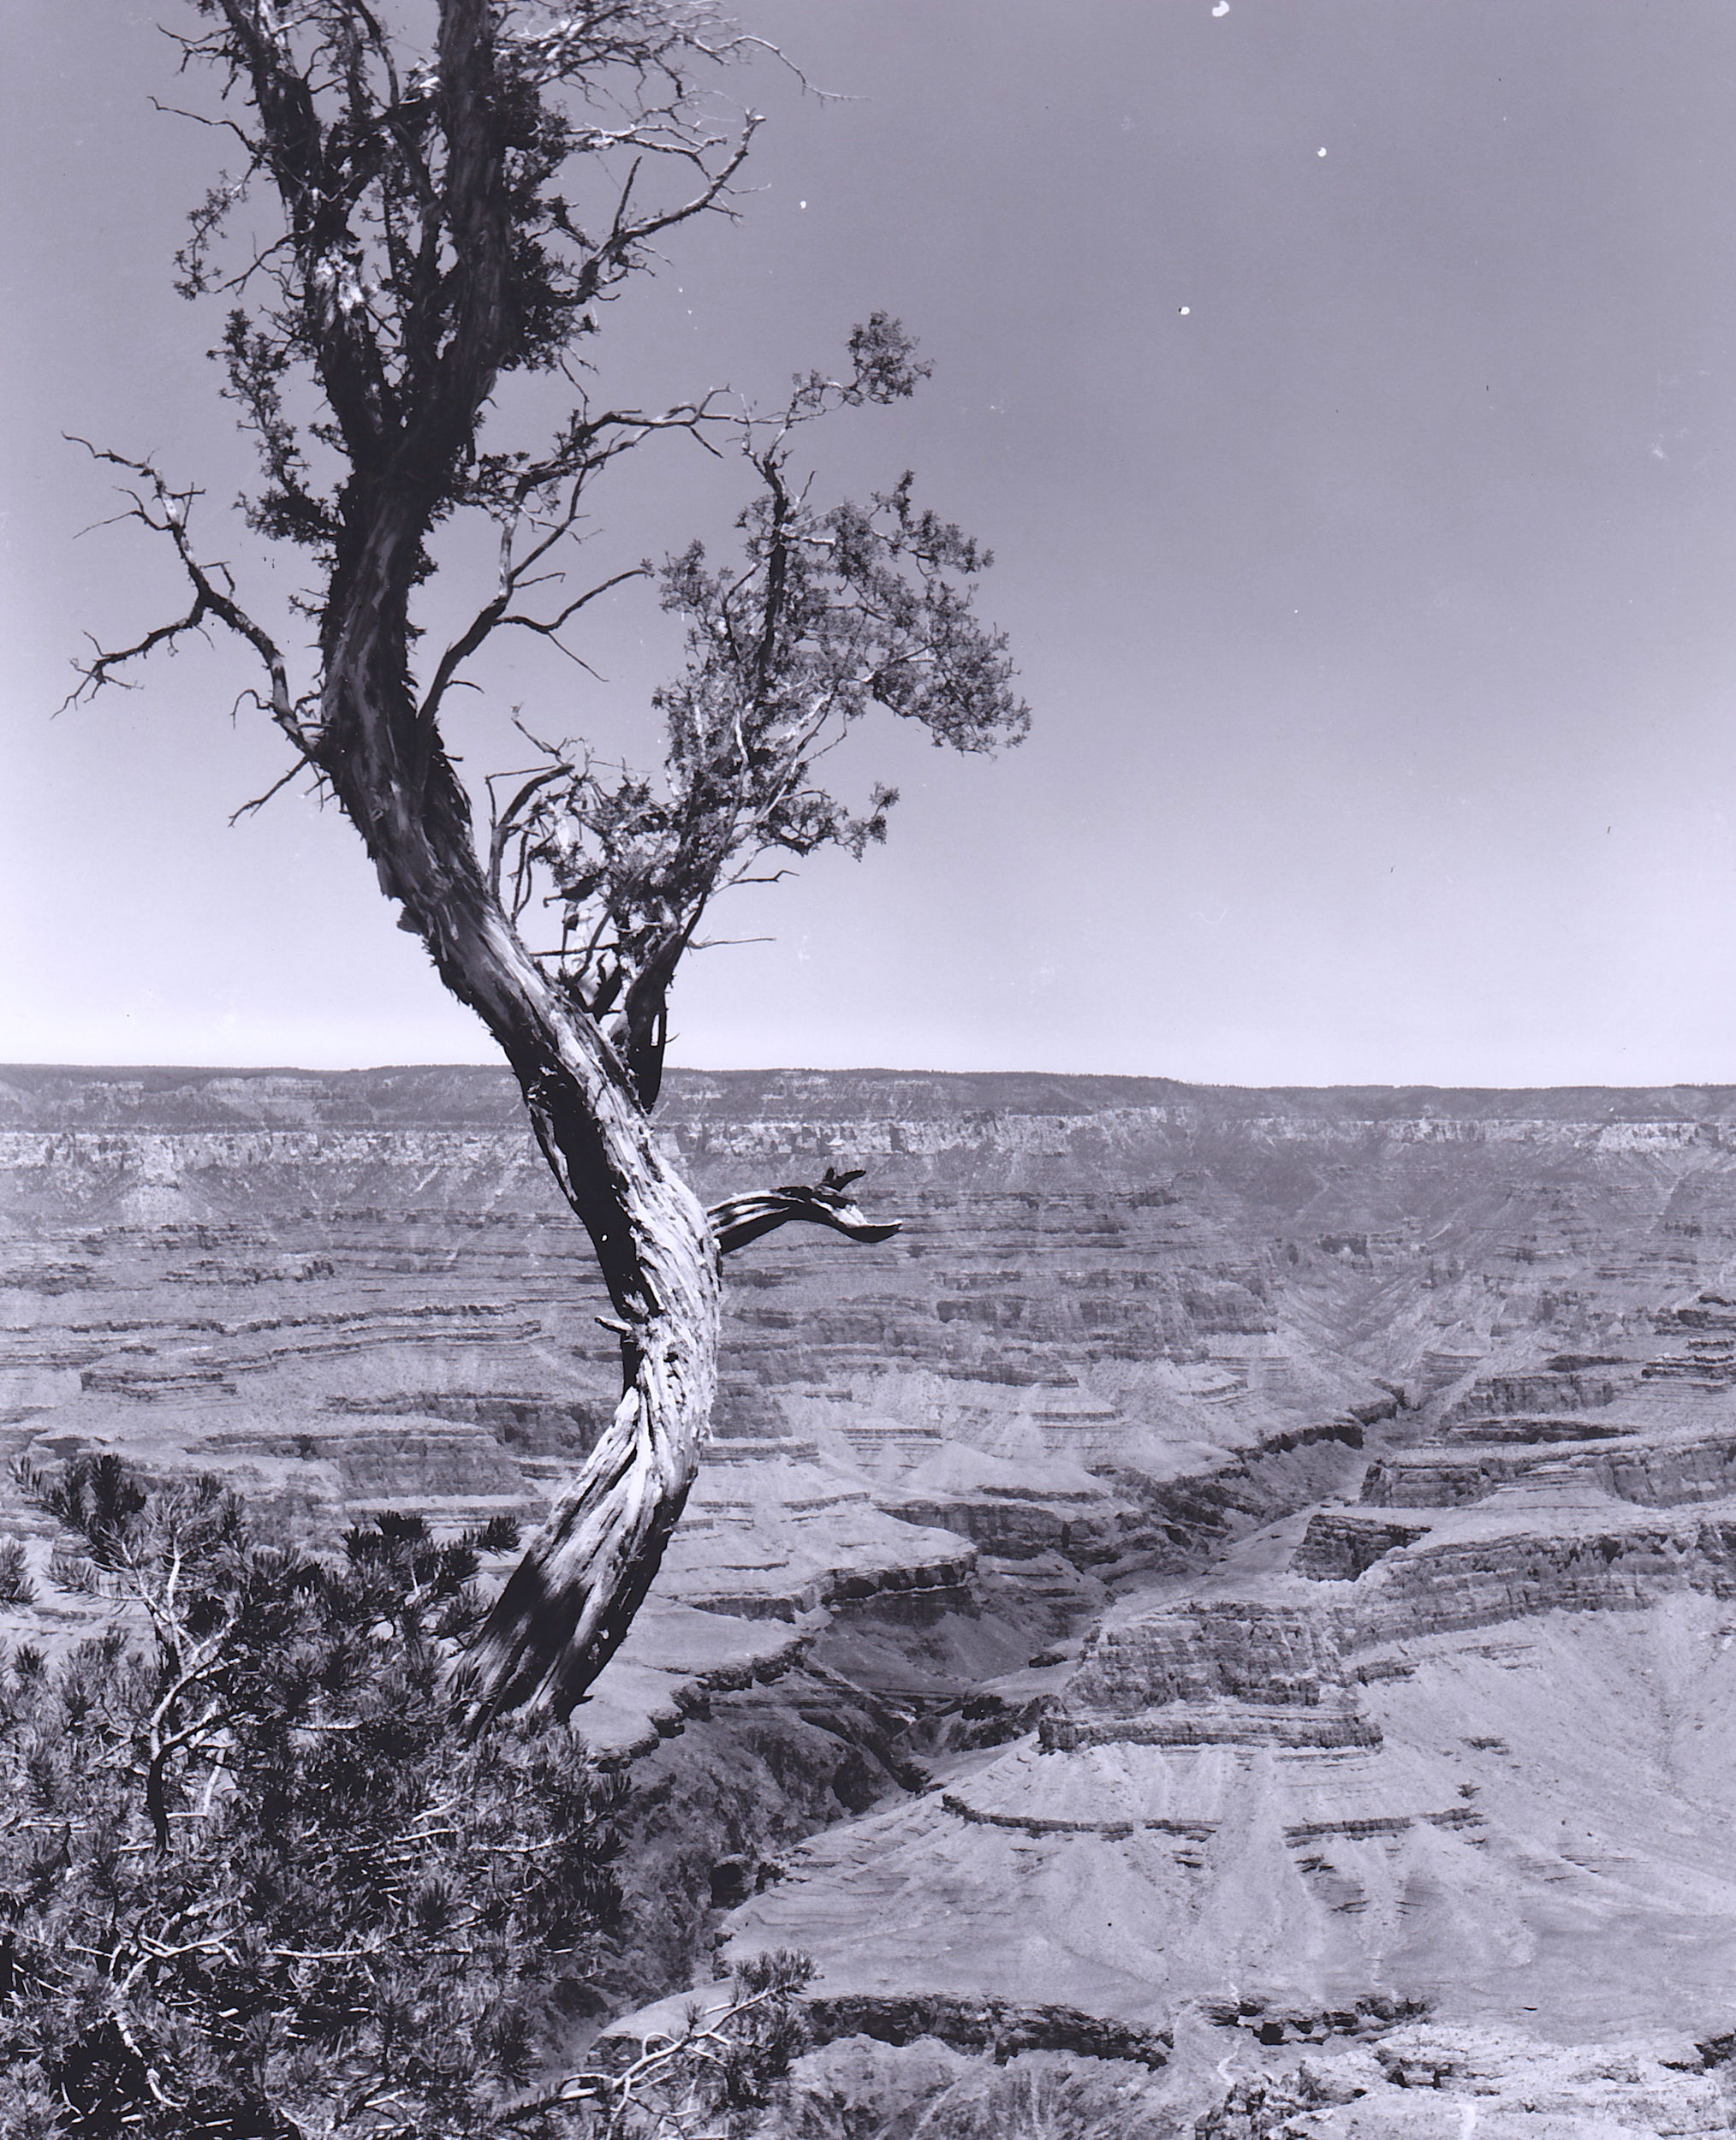 grand canyon overlook photograph